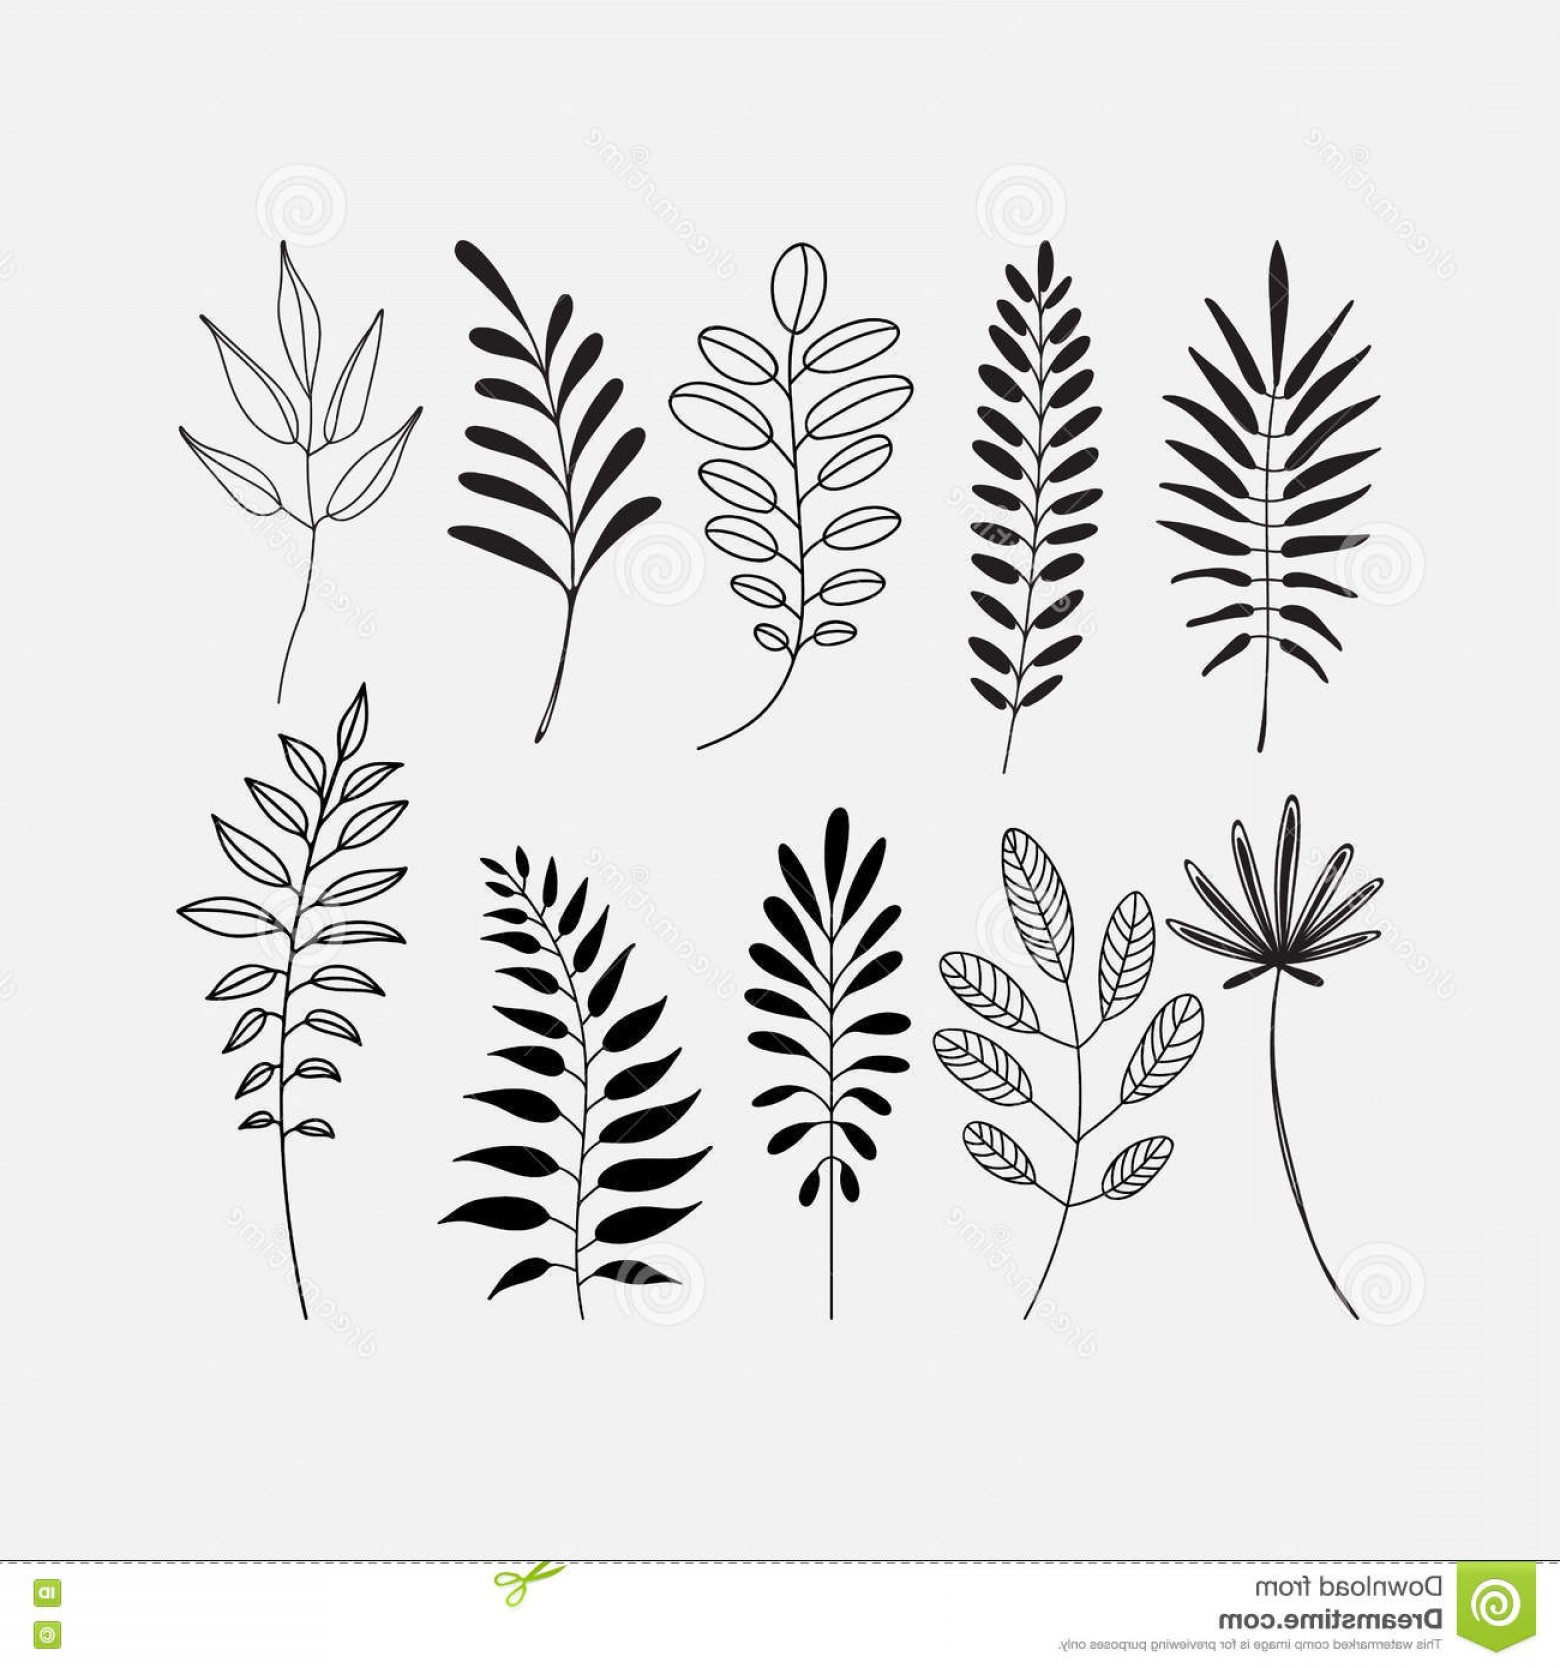 Vector Leaf Graphicd: Stock Illustration Graphic Decorative Set Leaf Icons Vector Icon Silhouette Outlined Different Leaves Trees Image